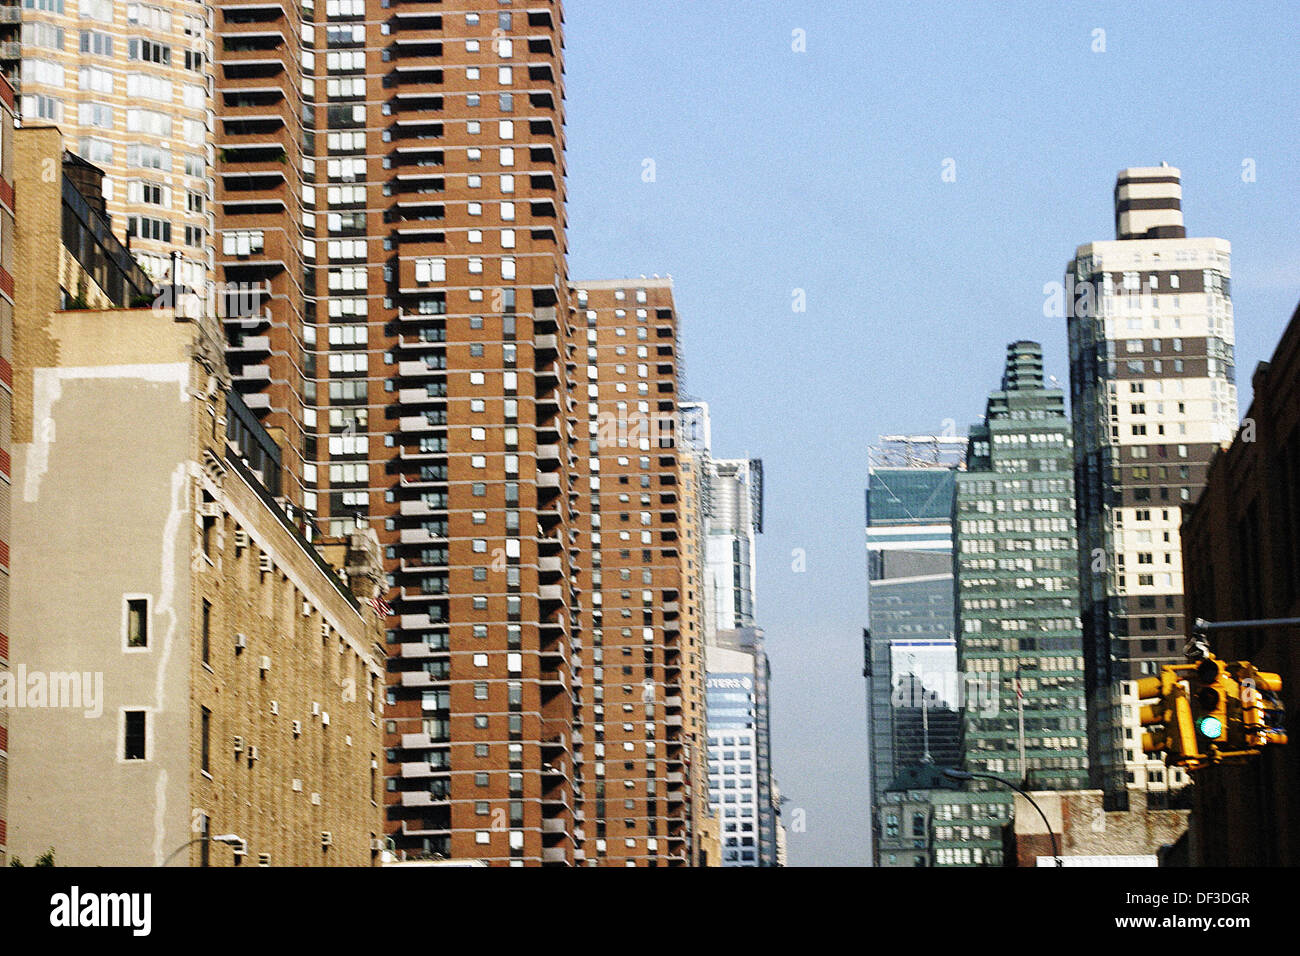 42nd Street in Manhattan between 11th and 12th Avenue. New York City. USA - Stock Image